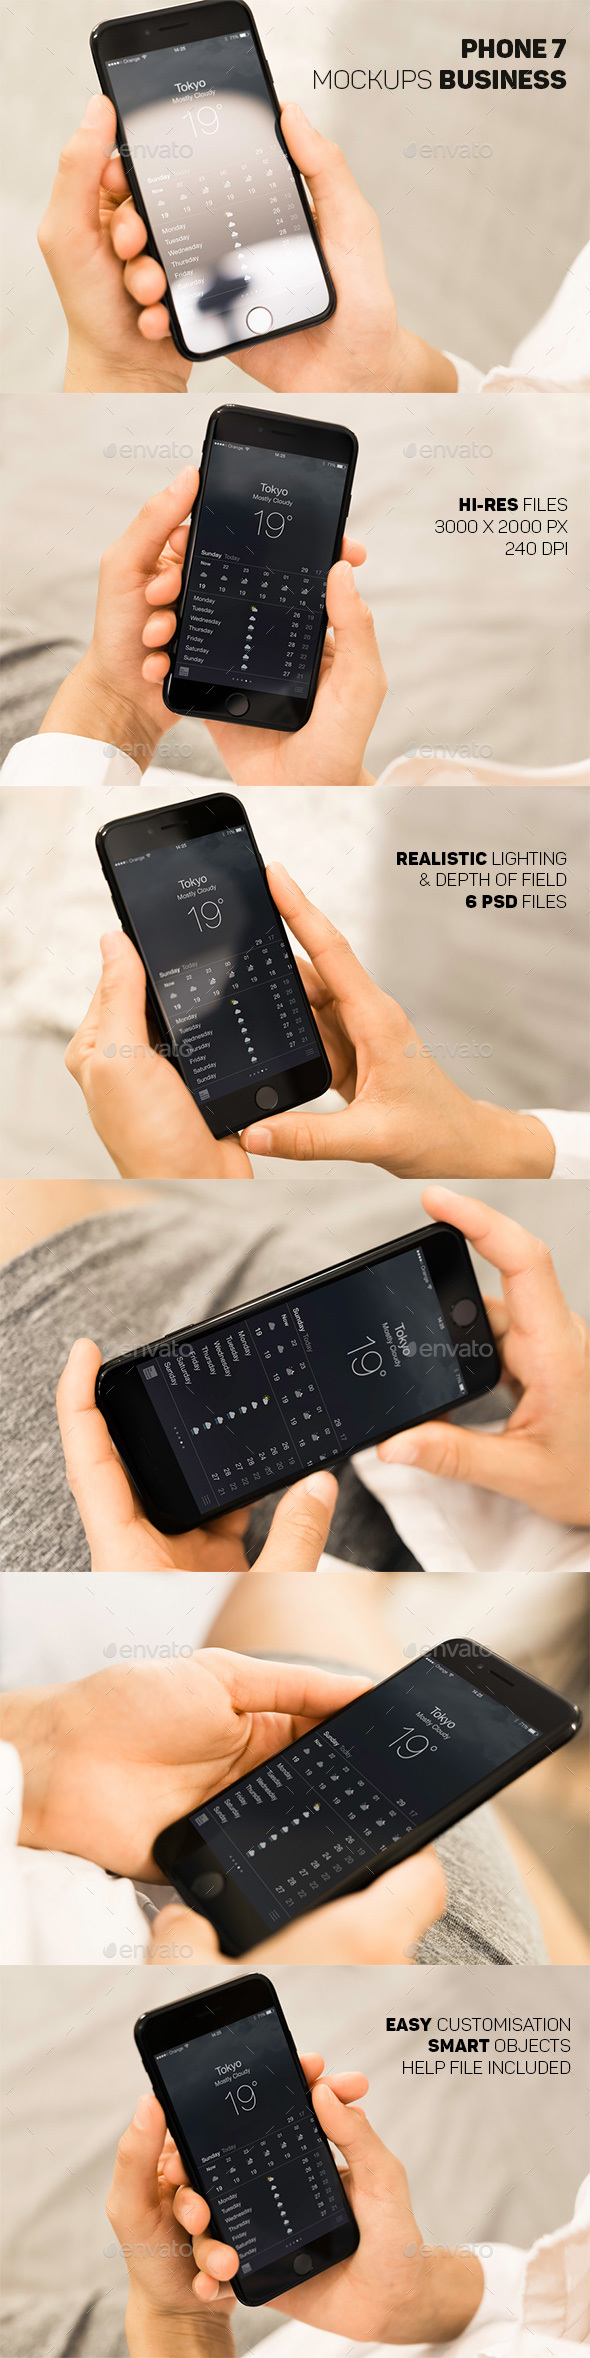 Phone 7 Hand Business Mockup